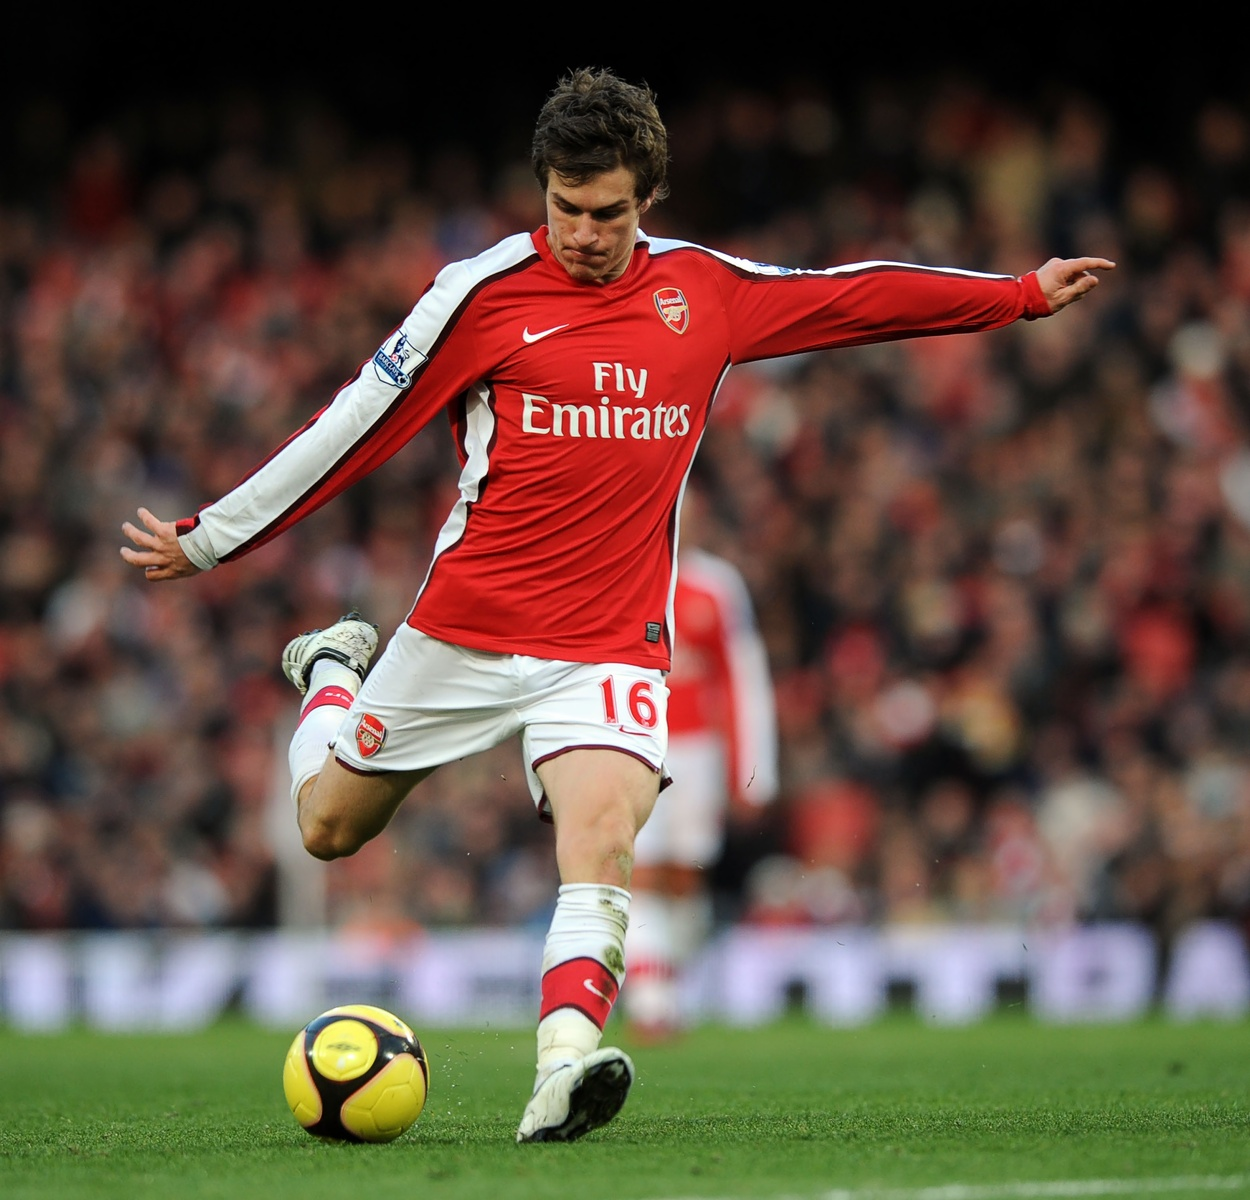 aaron-ramsey-arsenal picture, aaron-ramsey-arsenal photo ...